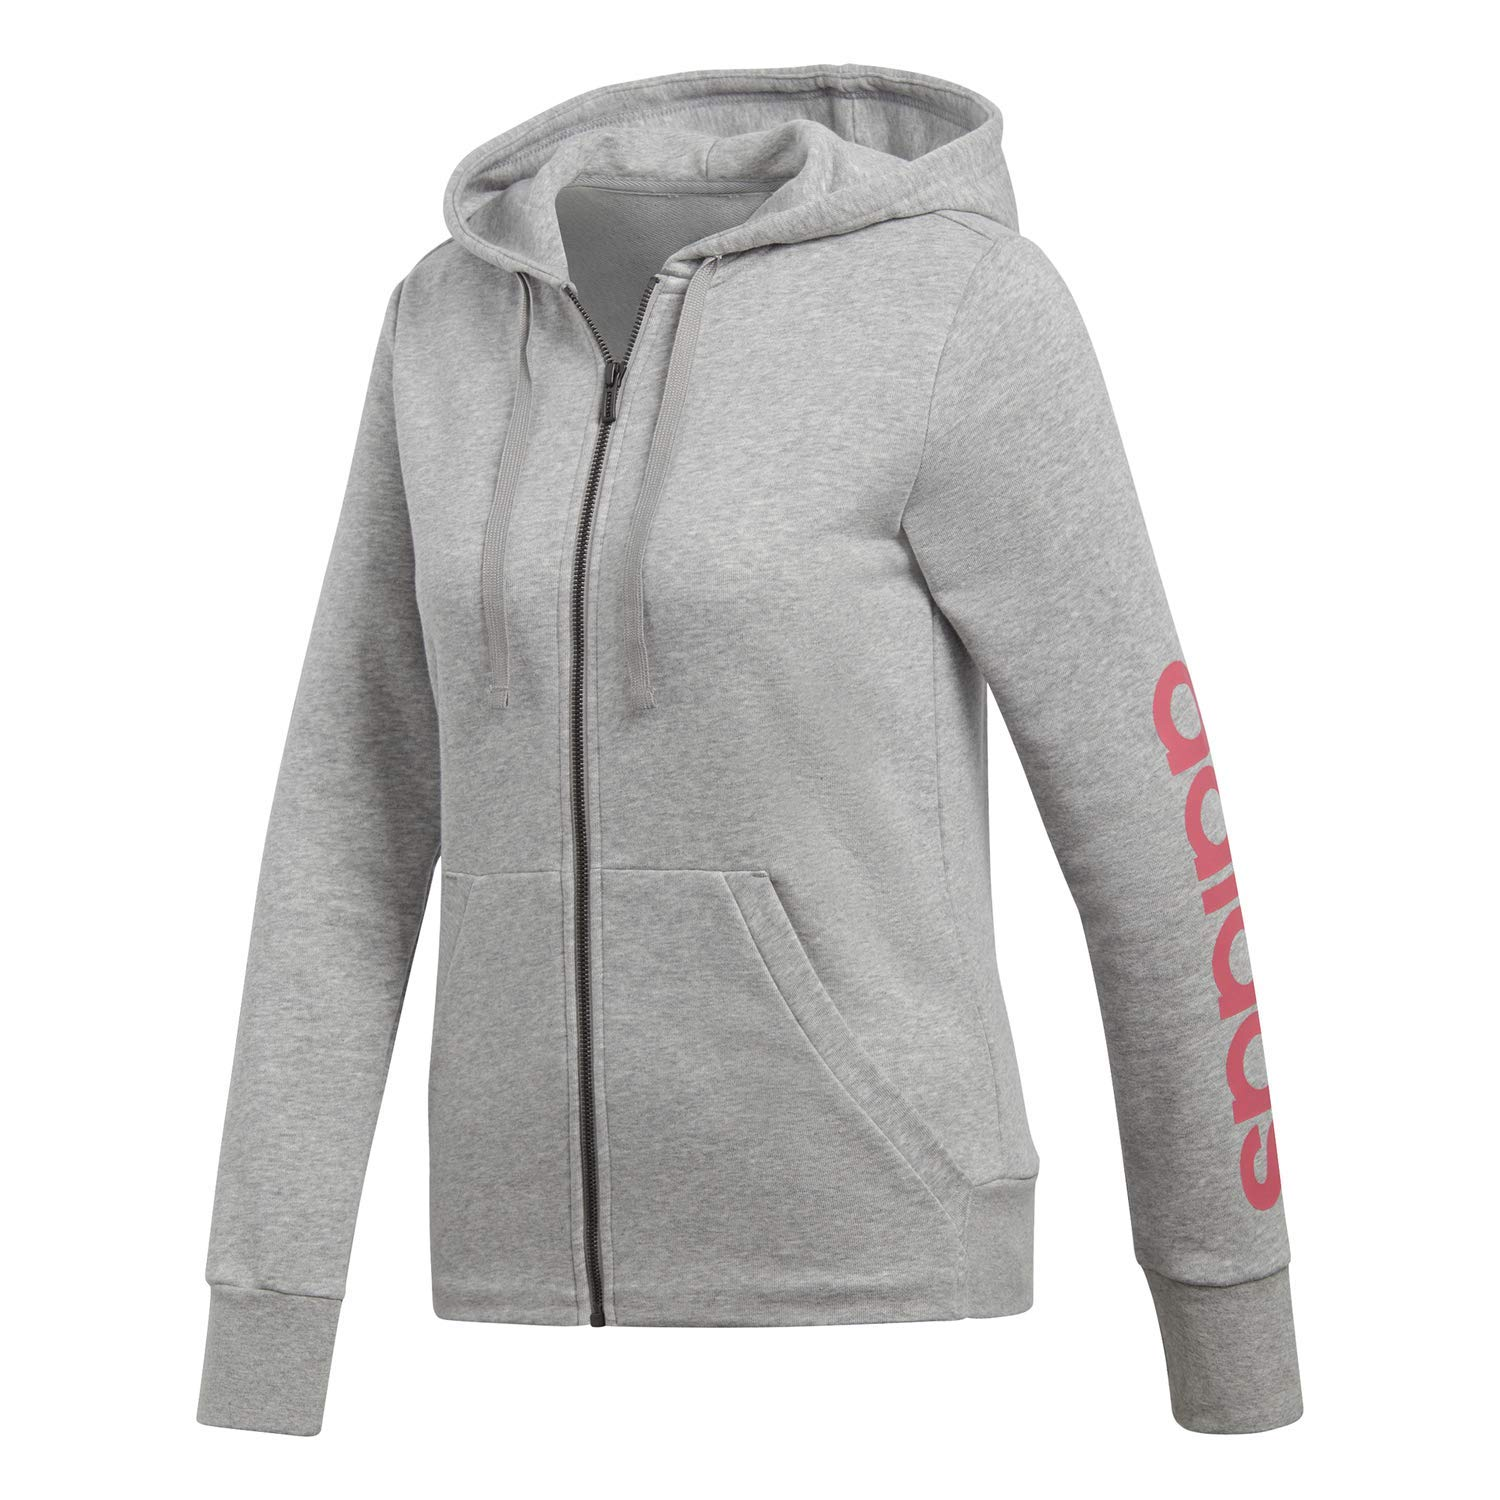 adidas Women's Essentials Linear Full Zip Fleece Hoodie, Medium Grey Heather/Real Pink, Small by adidas